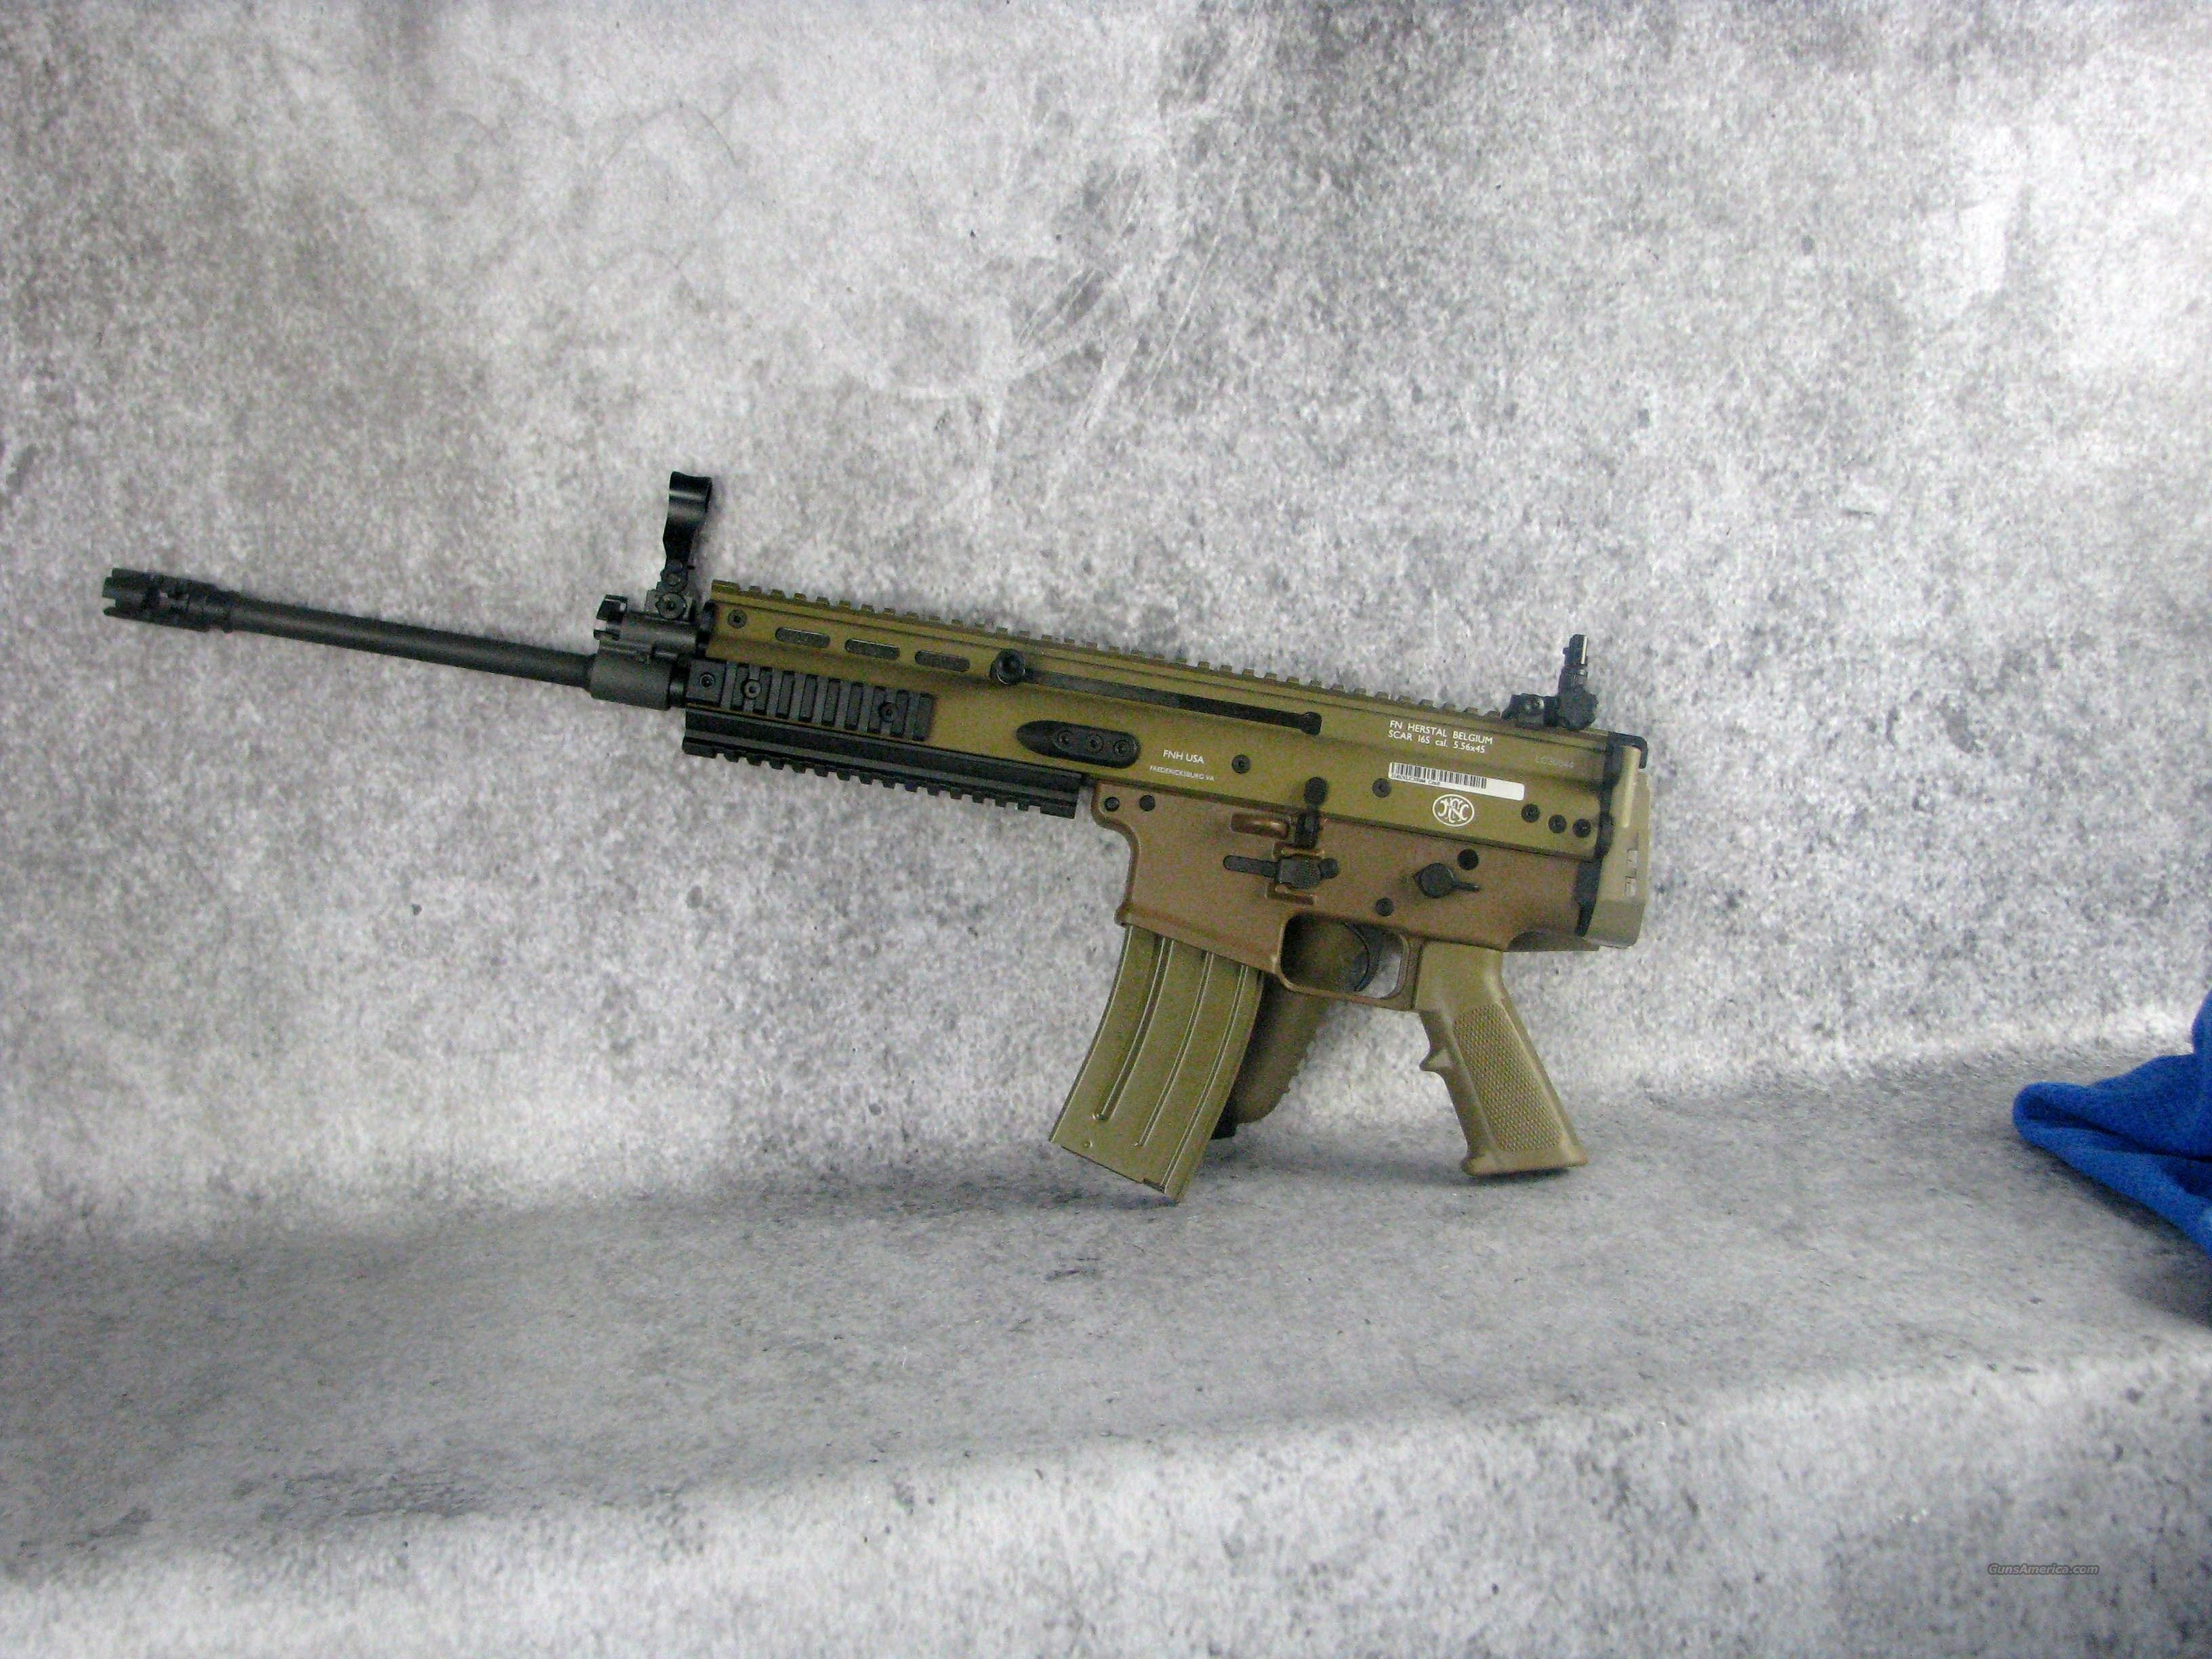 FNH FDE SCAR 16s 5.56mm NATO 98501  223 Rem 30 Rd FDE  /EASY PAY $230 Monthly Guns > Pistols > FNH - Fabrique Nationale (FN) Rifles > Semi-auto > SCAR